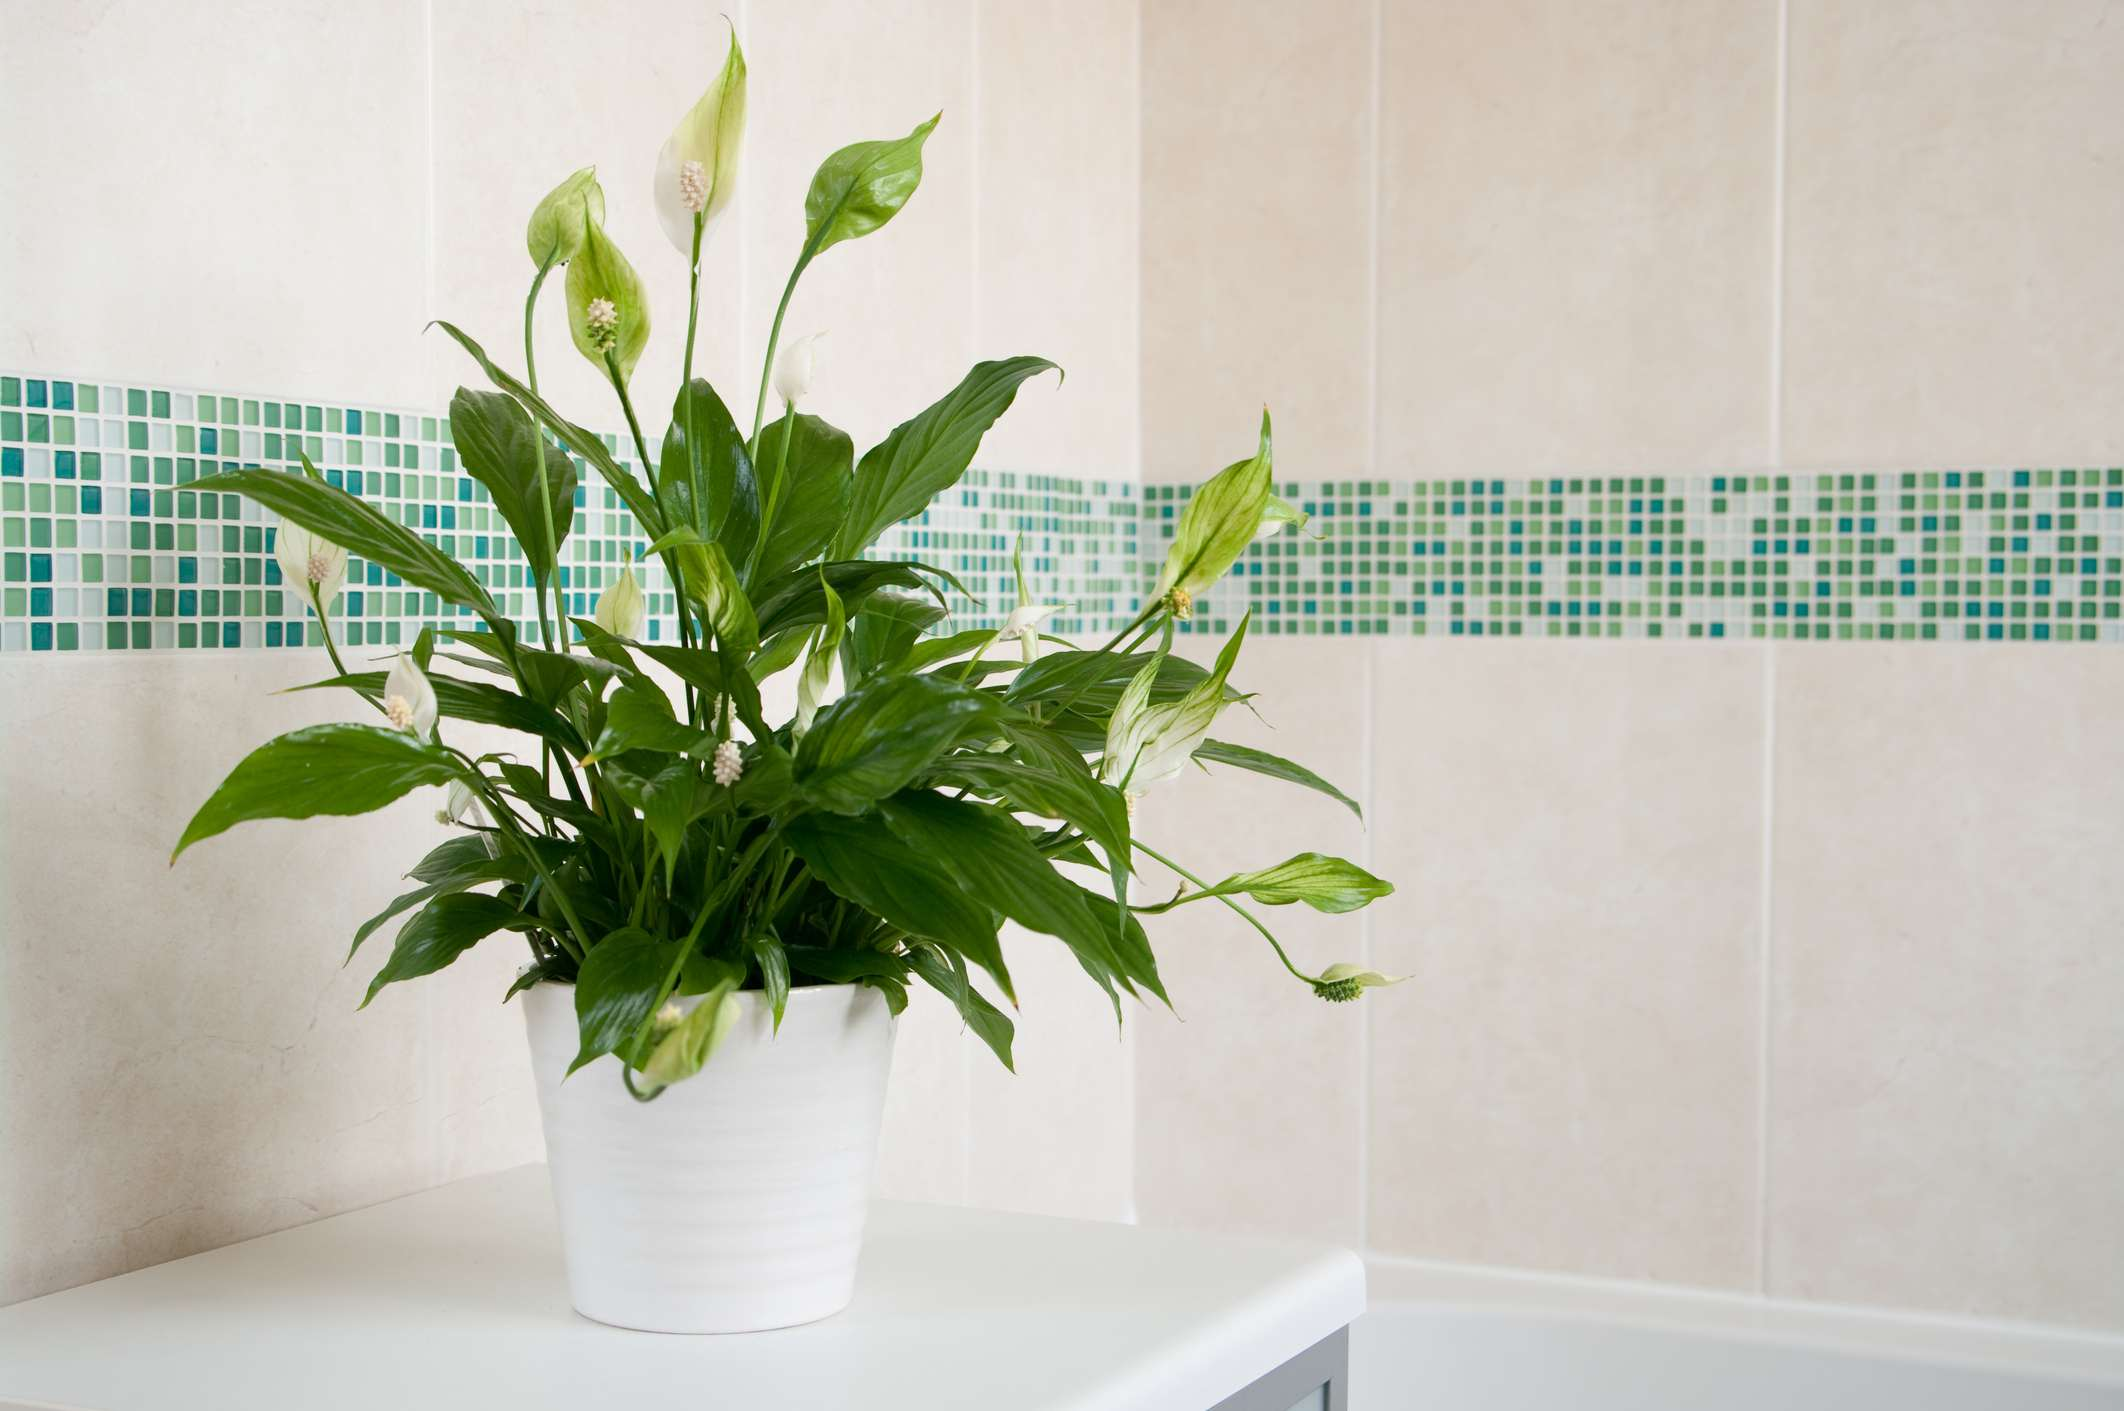 Houseplants That May Purify Indoor Air on indoor spices, indoor trees, indoor organic gardening, indoor palms, indoor orchids, indoor plants, indoor ferns, indoor shrubs, indoor seedlings, indoor roses,